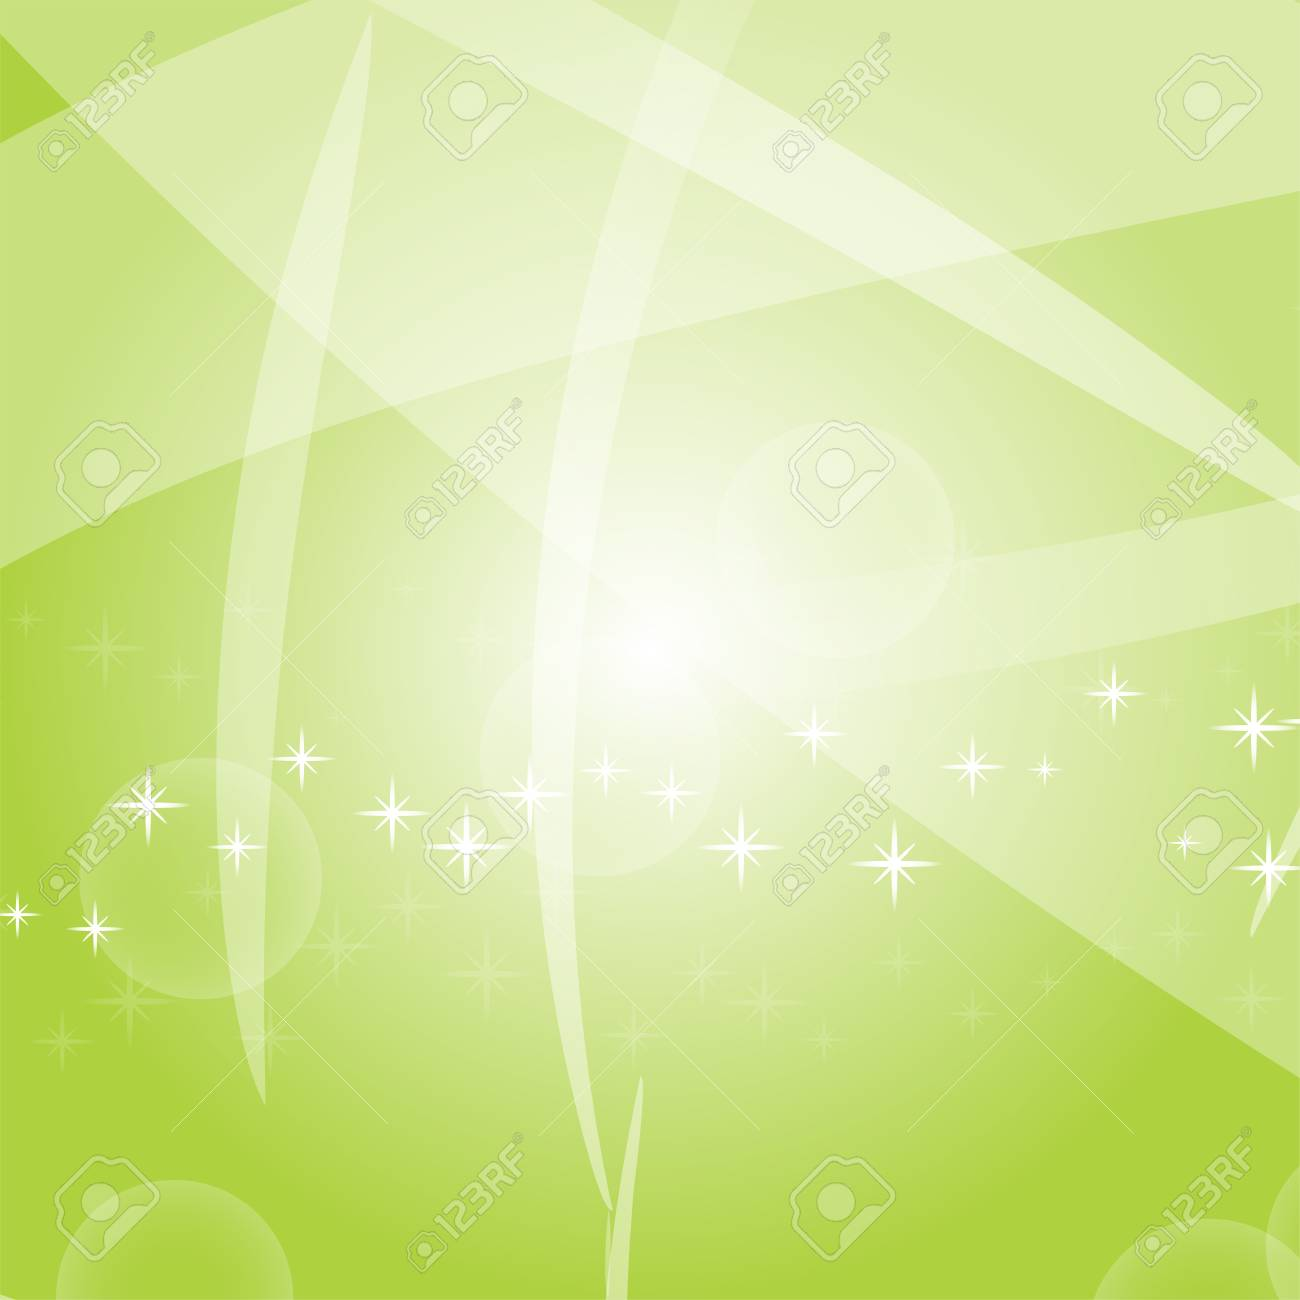 Light colored abstract background with circles, stars and lines. Suitable for festivals and packages. Vector illustration - 126725481